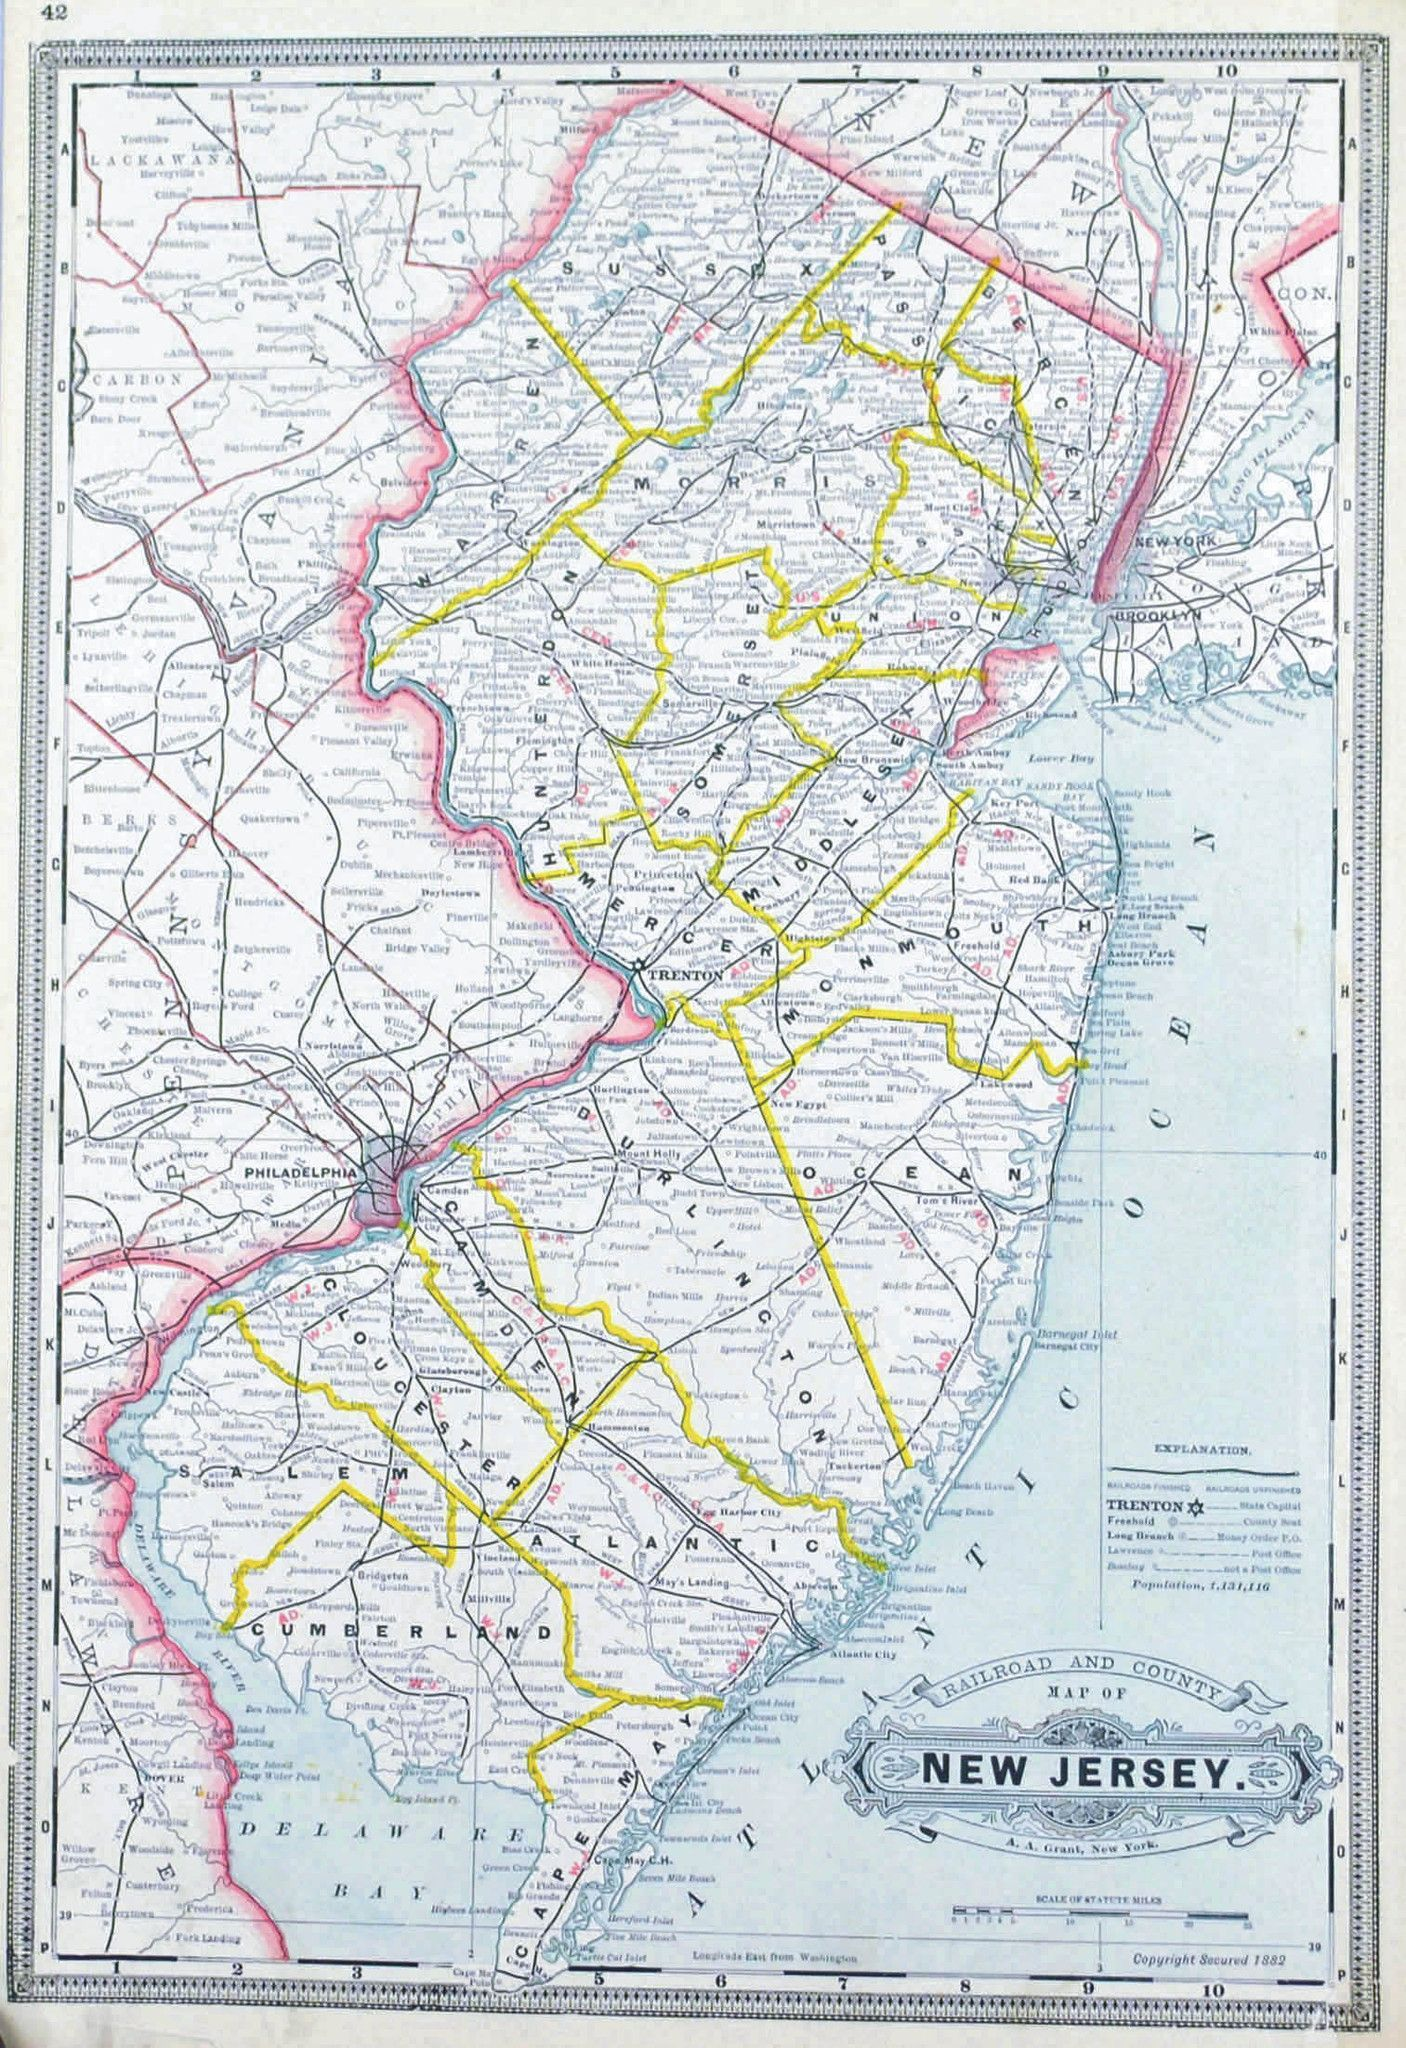 Railroad And County Map Of New Jersey